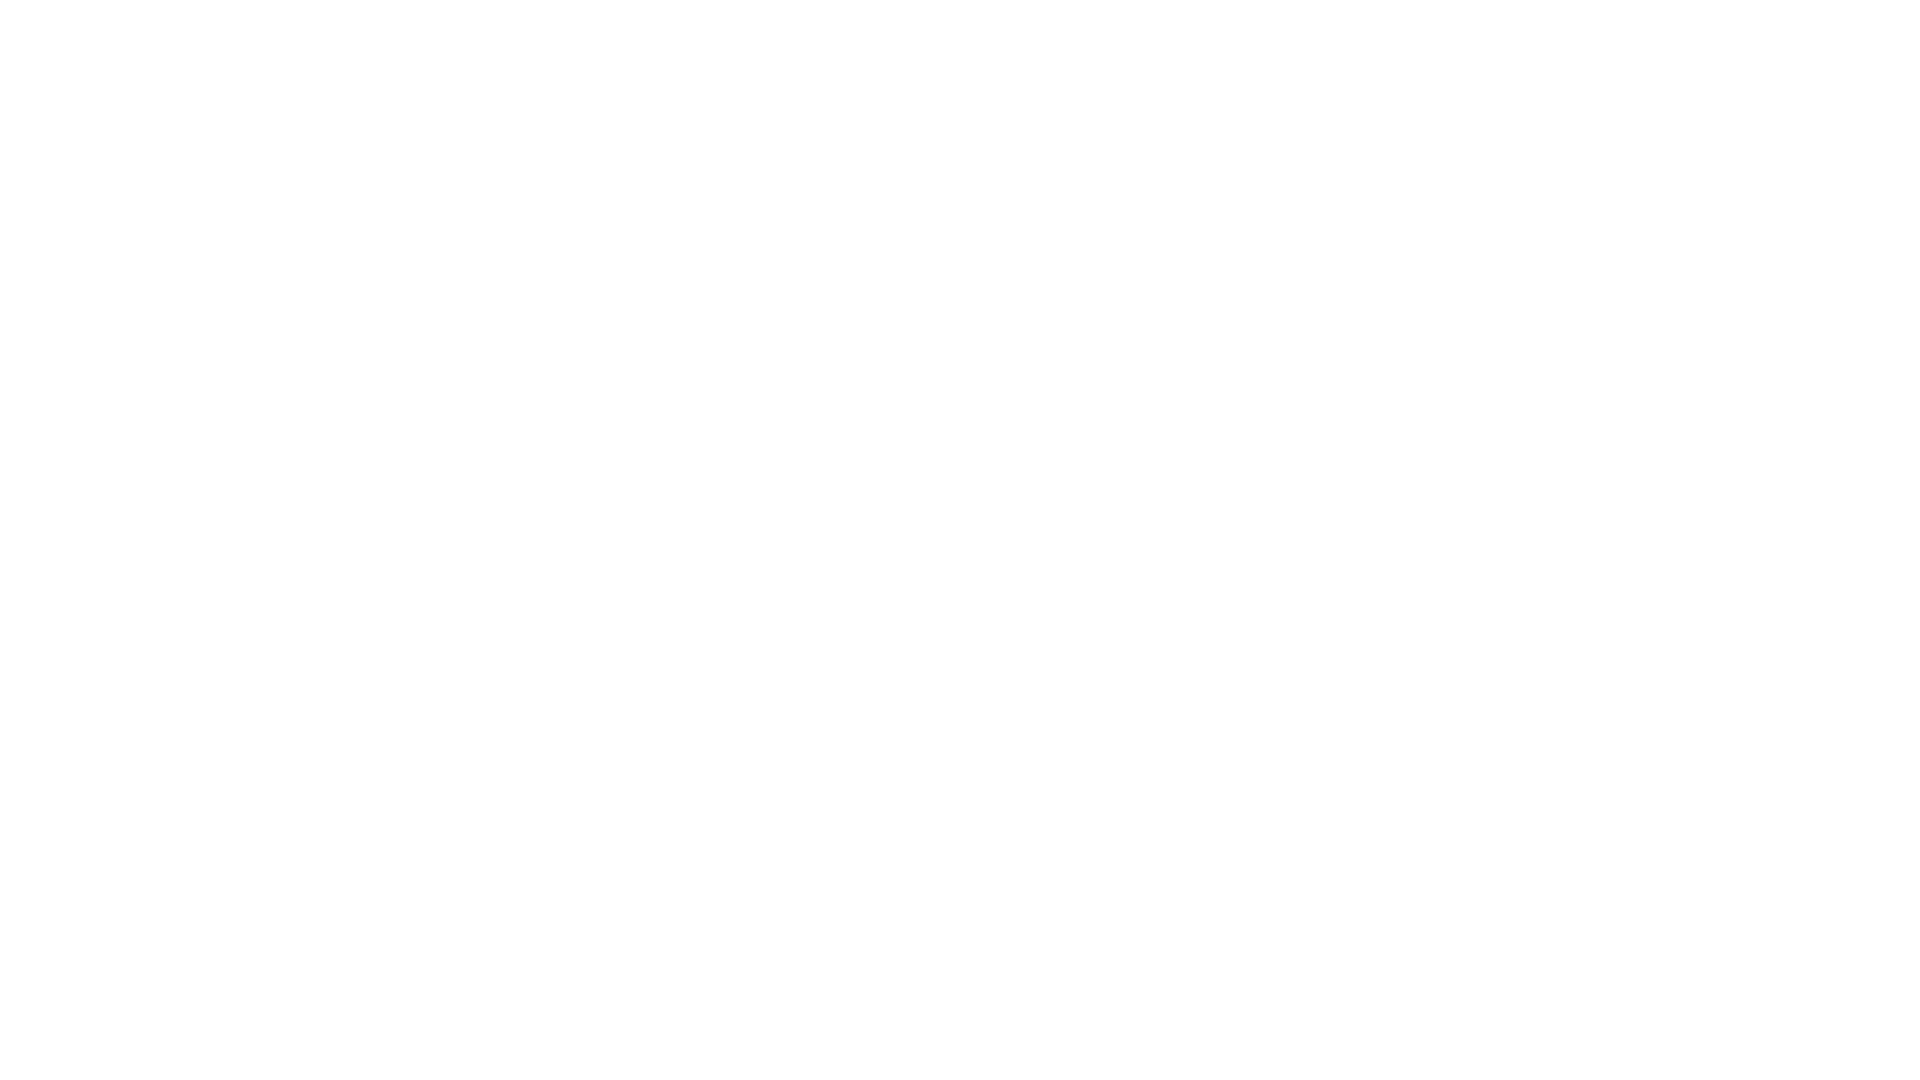 The cut by Ibo Herning